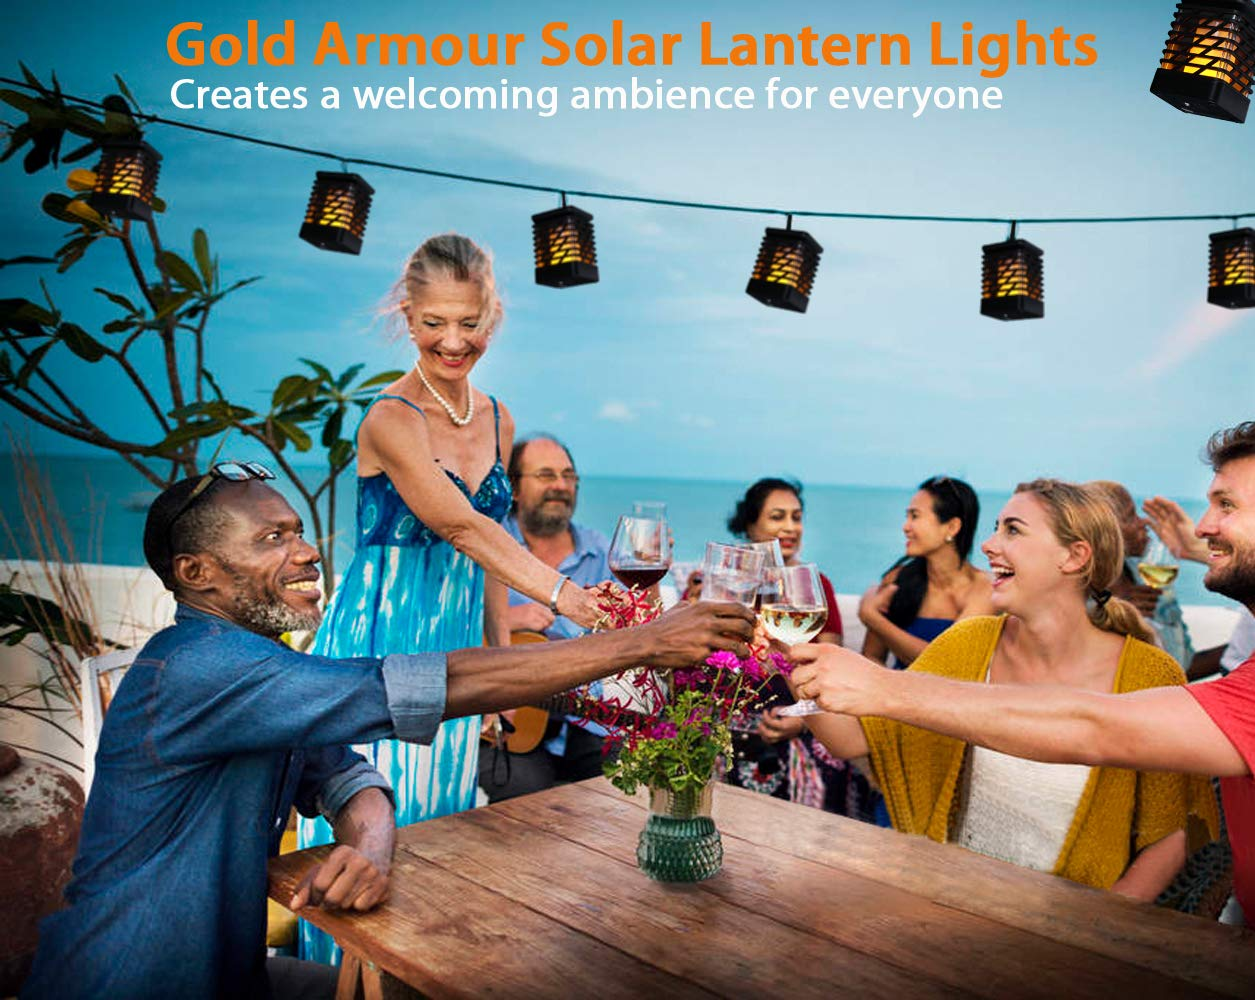 Flickering Flames Torch Solar Path Light 2 Pack Lantern Gold Armour 2 Pack Solar Lights Outdoor Dancing Flame Lighting 96 LED Dusk to Dawn Flickering Tiki Torches Outdoor Waterproof Garden